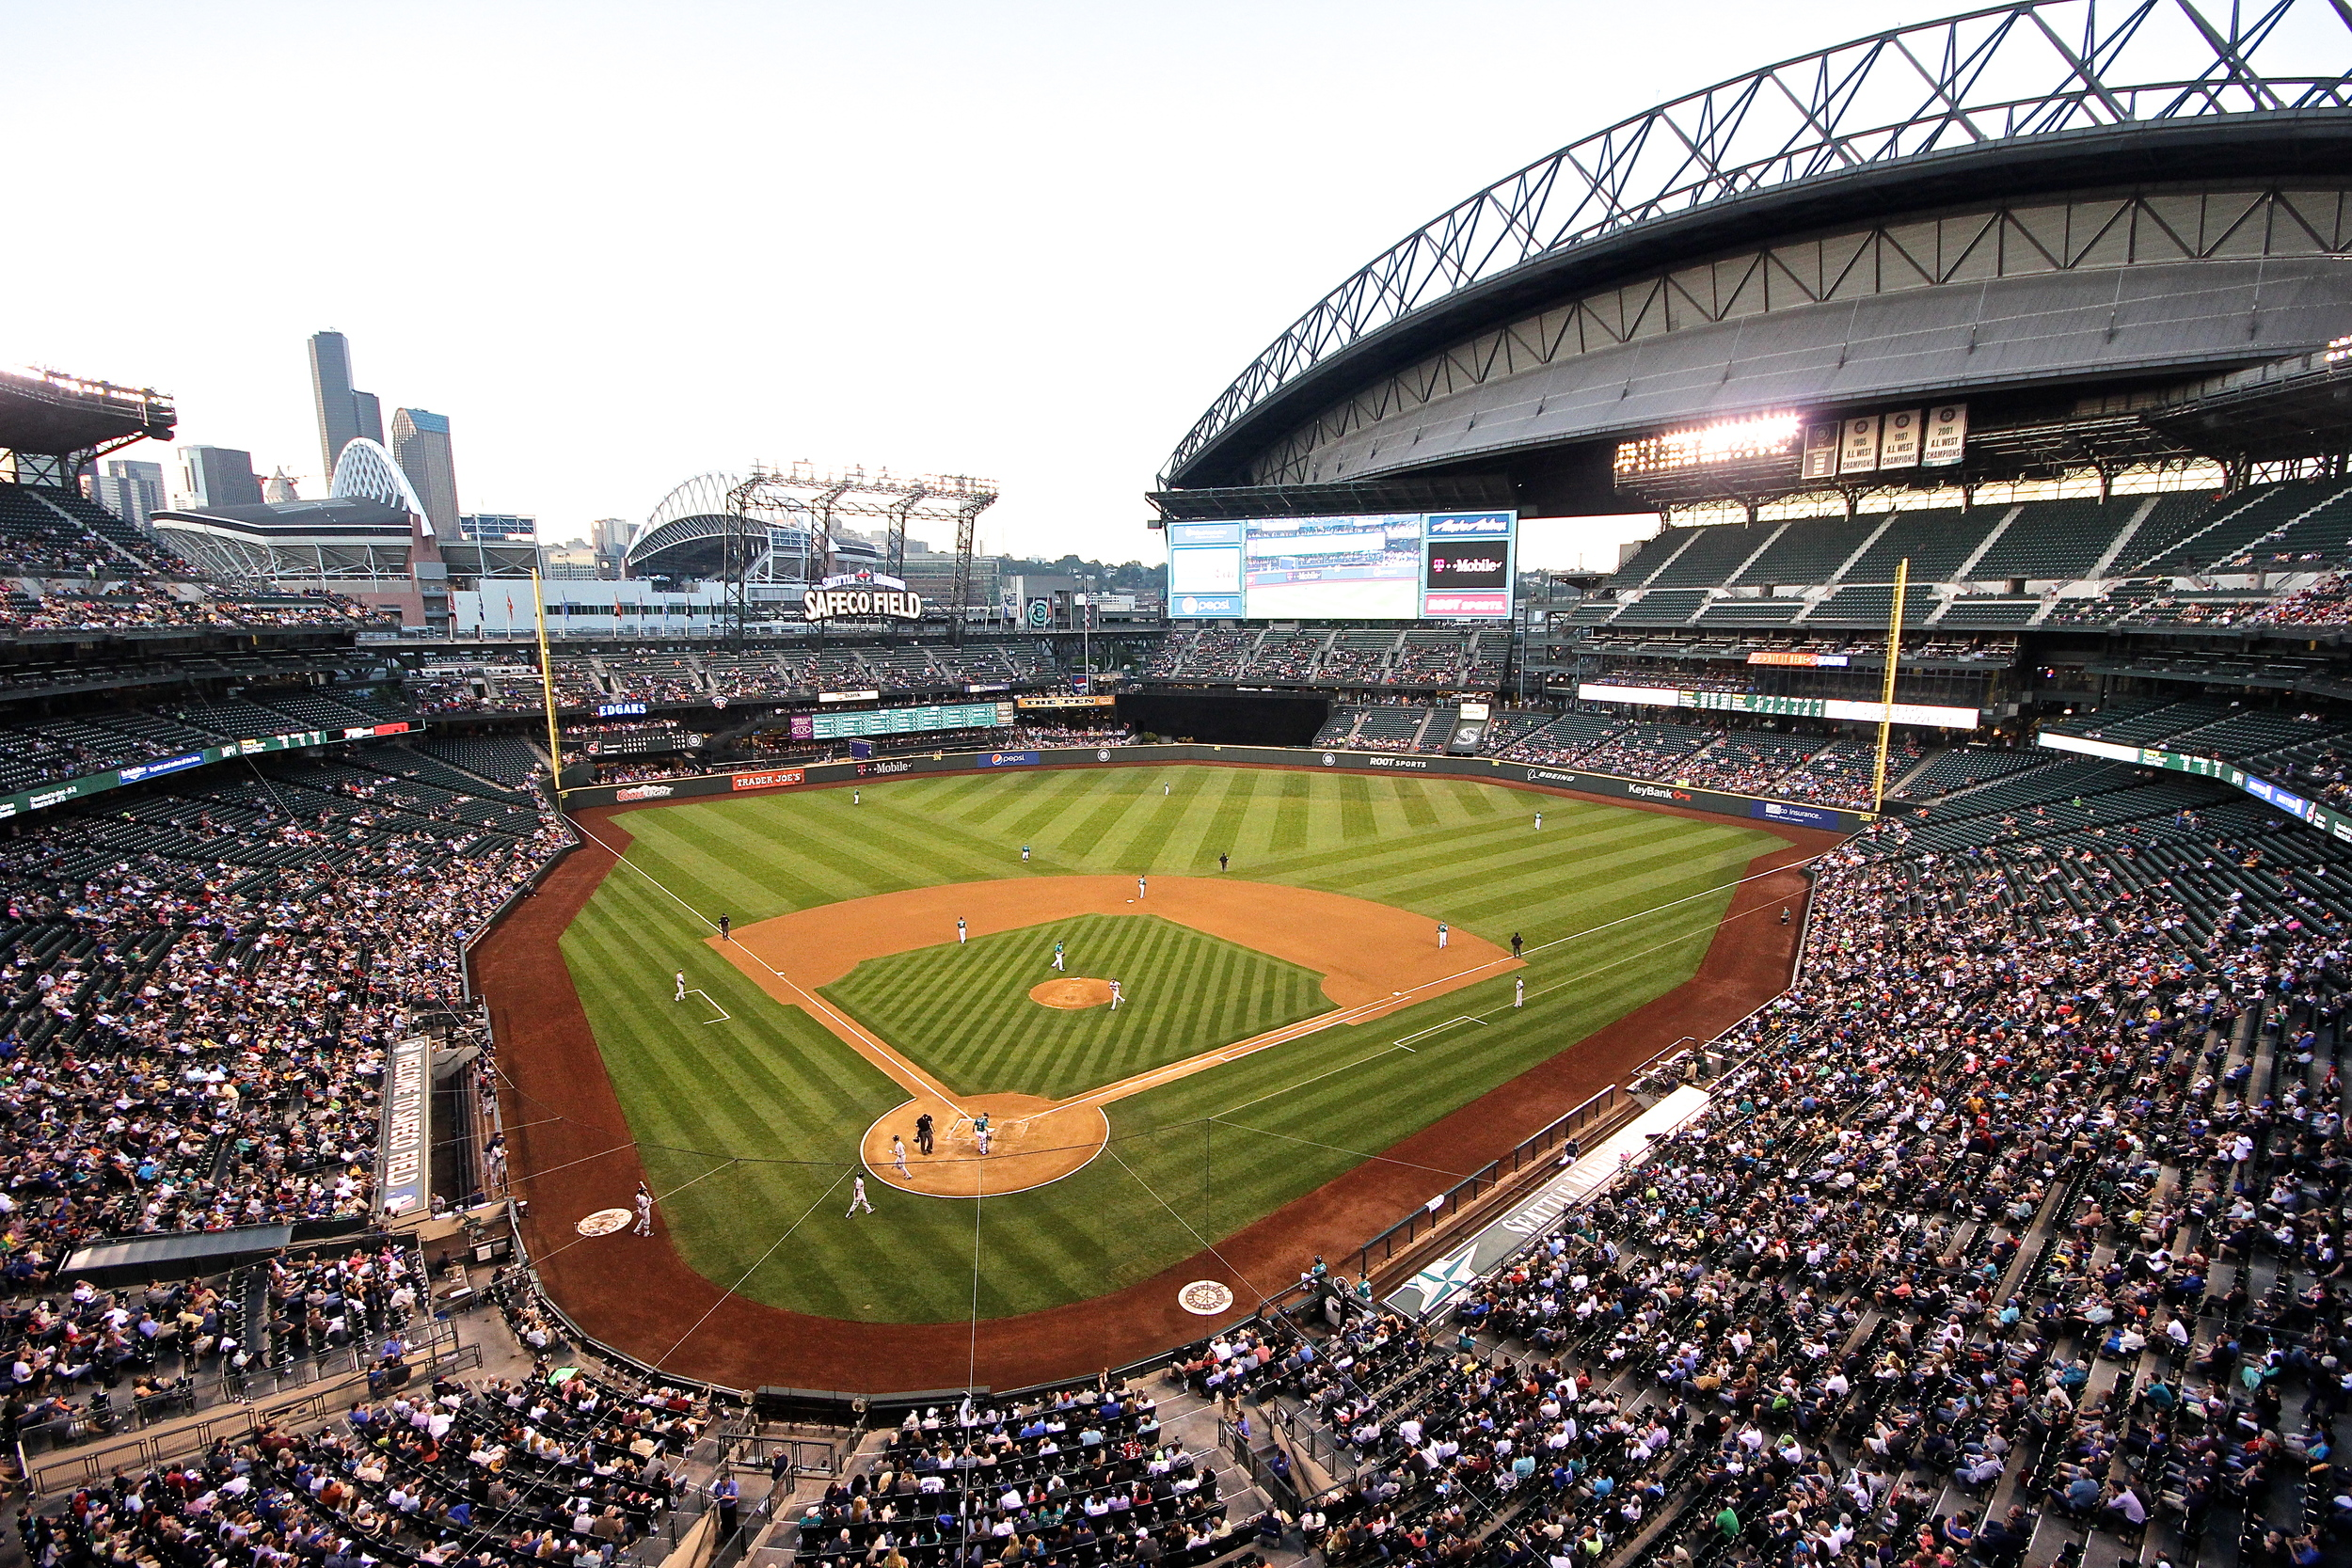 The absolutely gorgeous Safeco Field